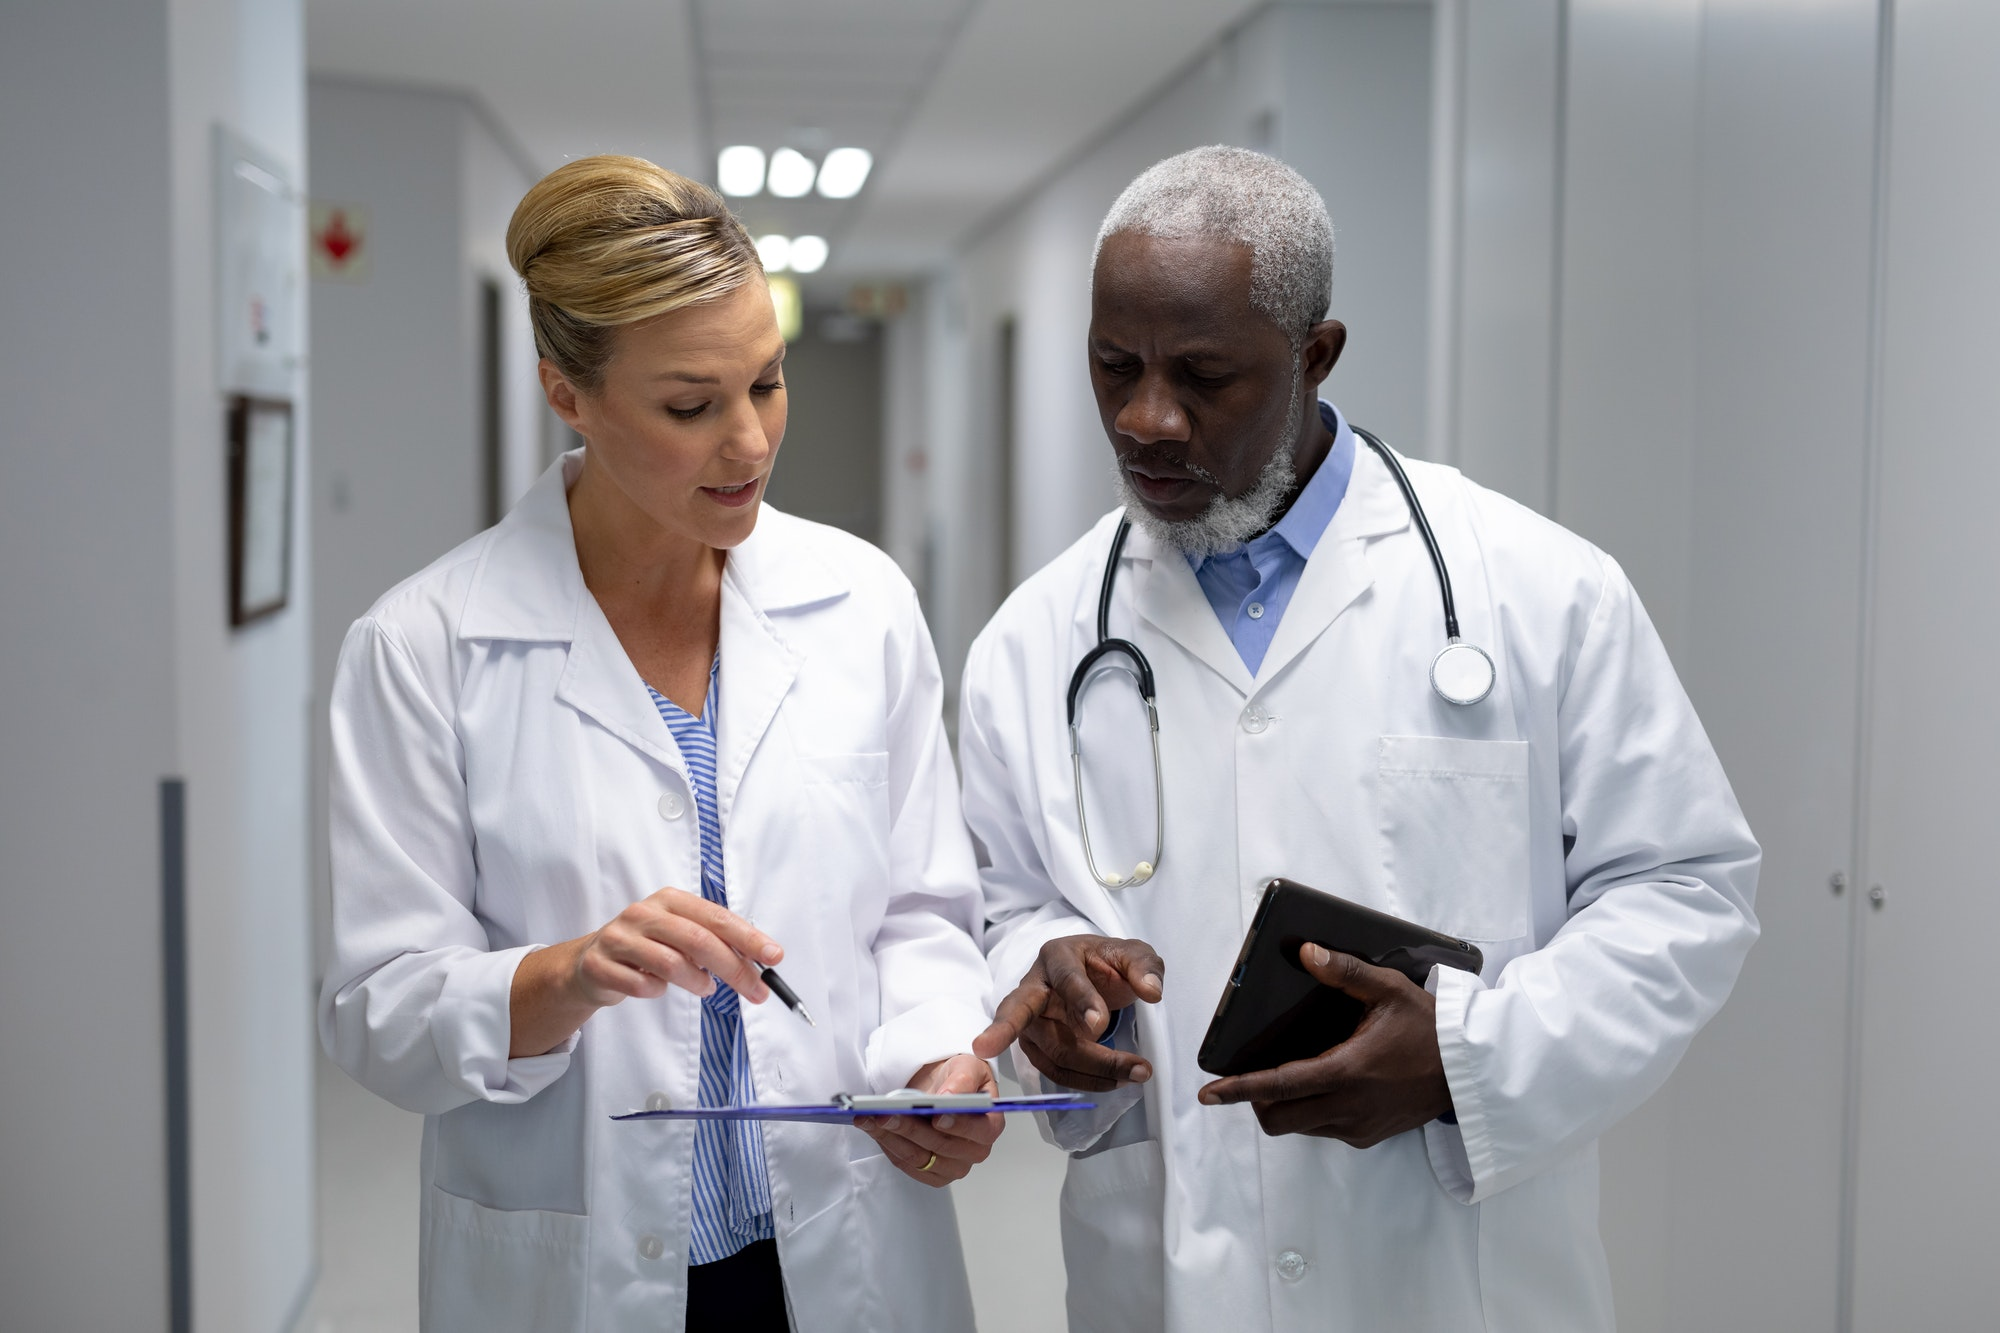 Diverse male and female doctors standing in hospital corridor looking at medical chart document